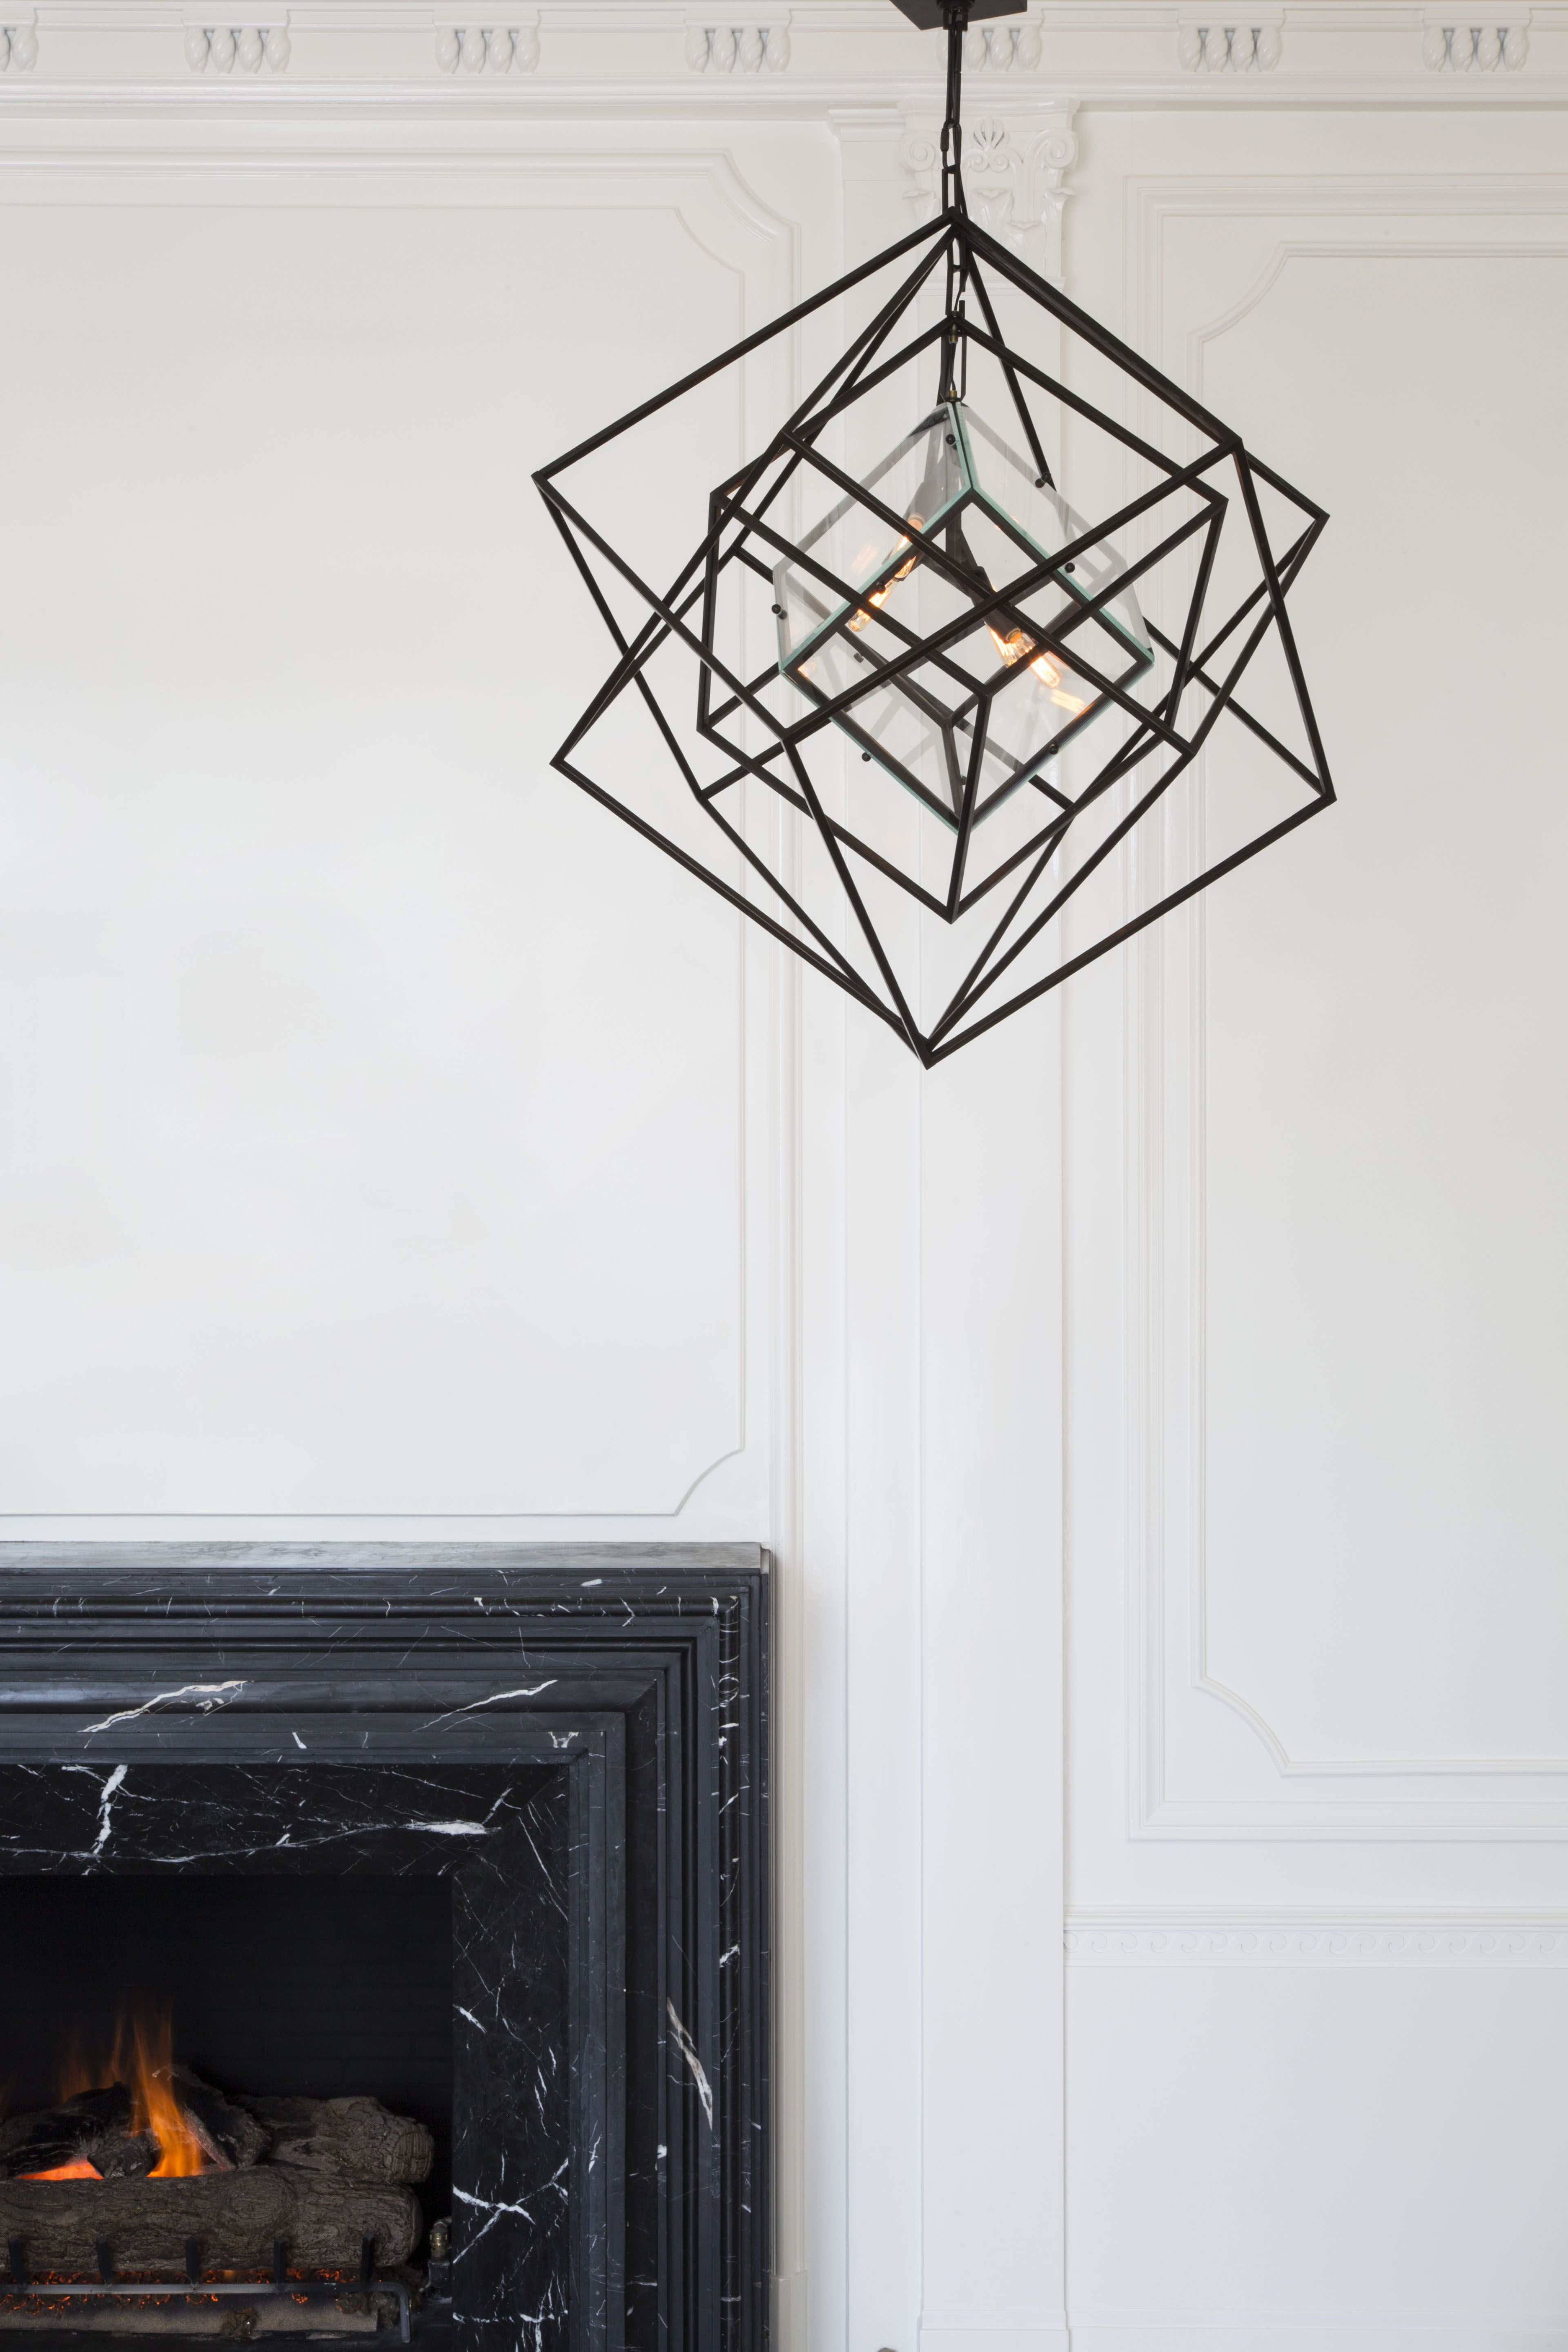 Cubist small chandelier - aged iron | Kelly wearstler, Chandeliers ...